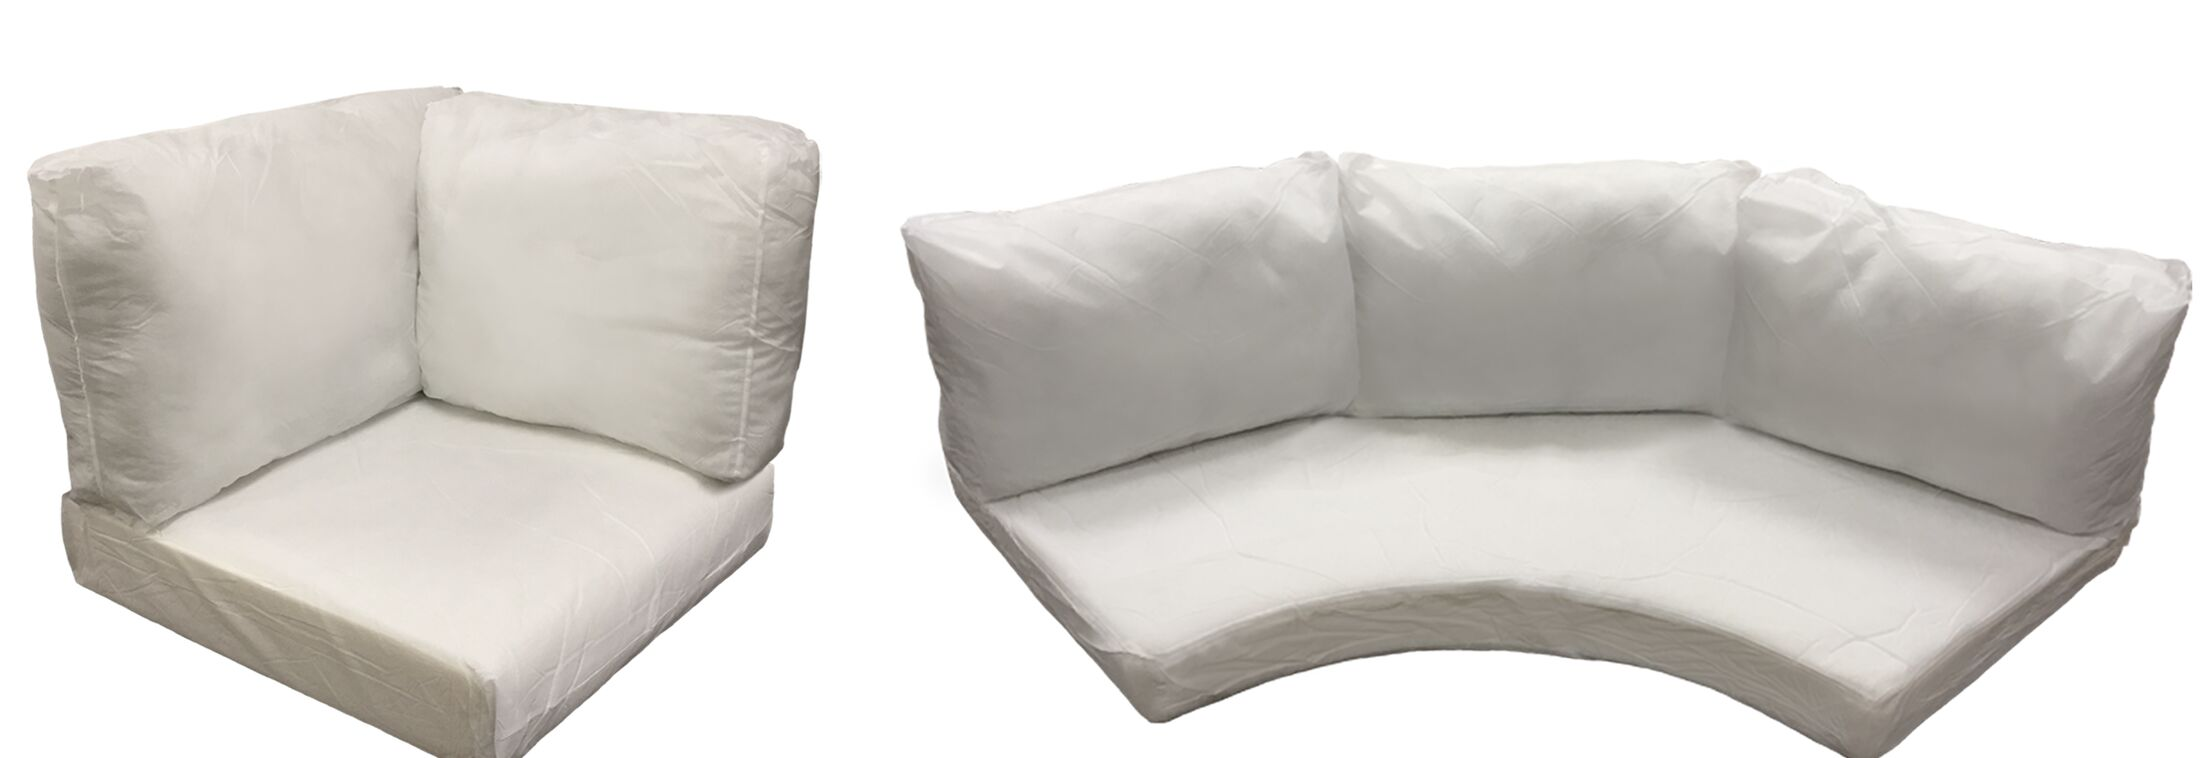 East Village 10 Piece Outdoor Cushion Set